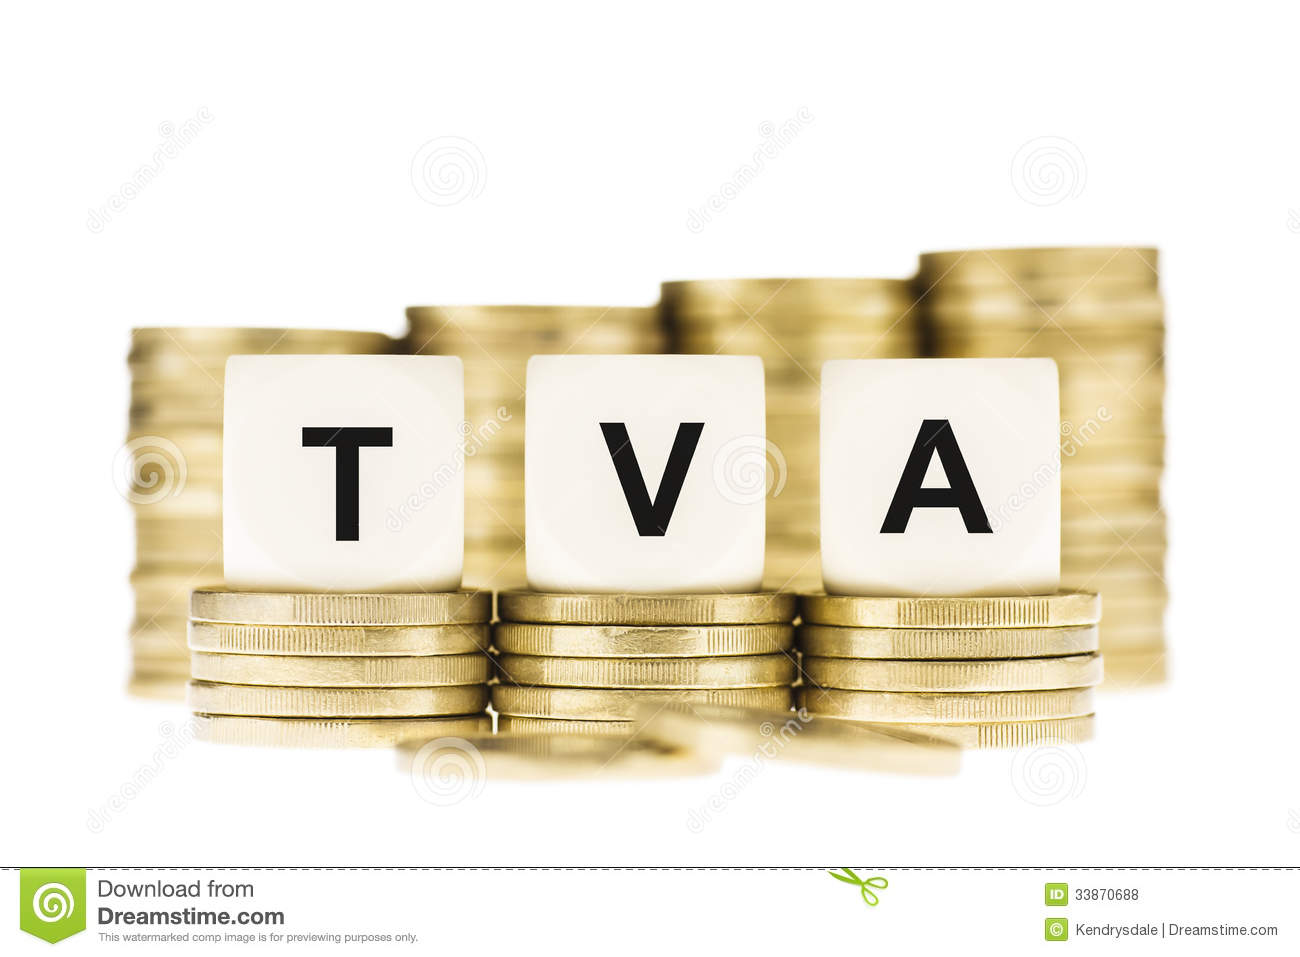 TVA (Value Added Tax) on Piles of Gold Coins with a White Background